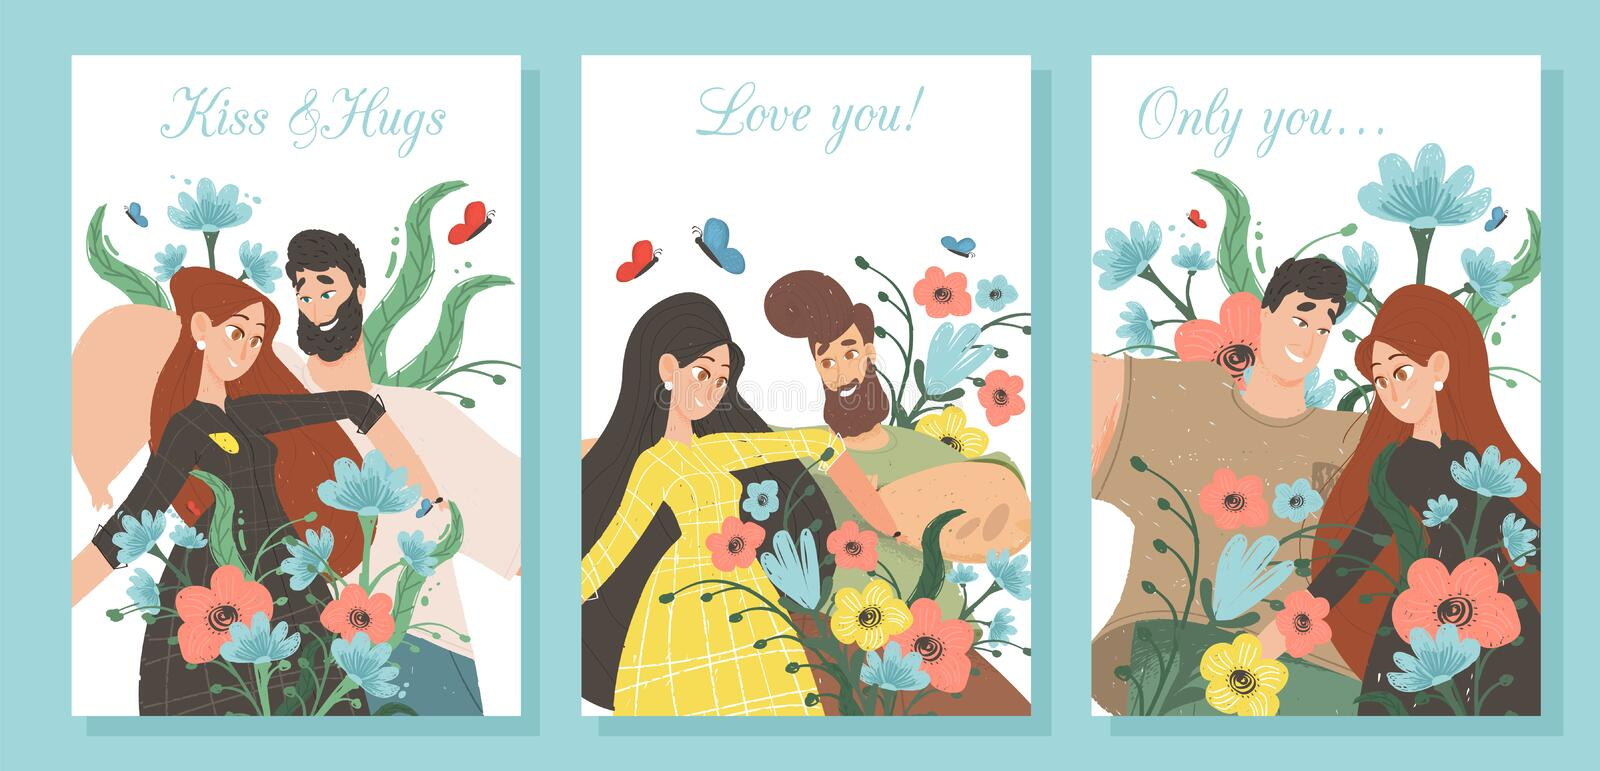 Set of Creative Banners for Loving Couple Dating. Set Creative Banners for Loving Couple. Man and Woman in Love on Colorful Background with Vibrant Flowers royalty free illustration